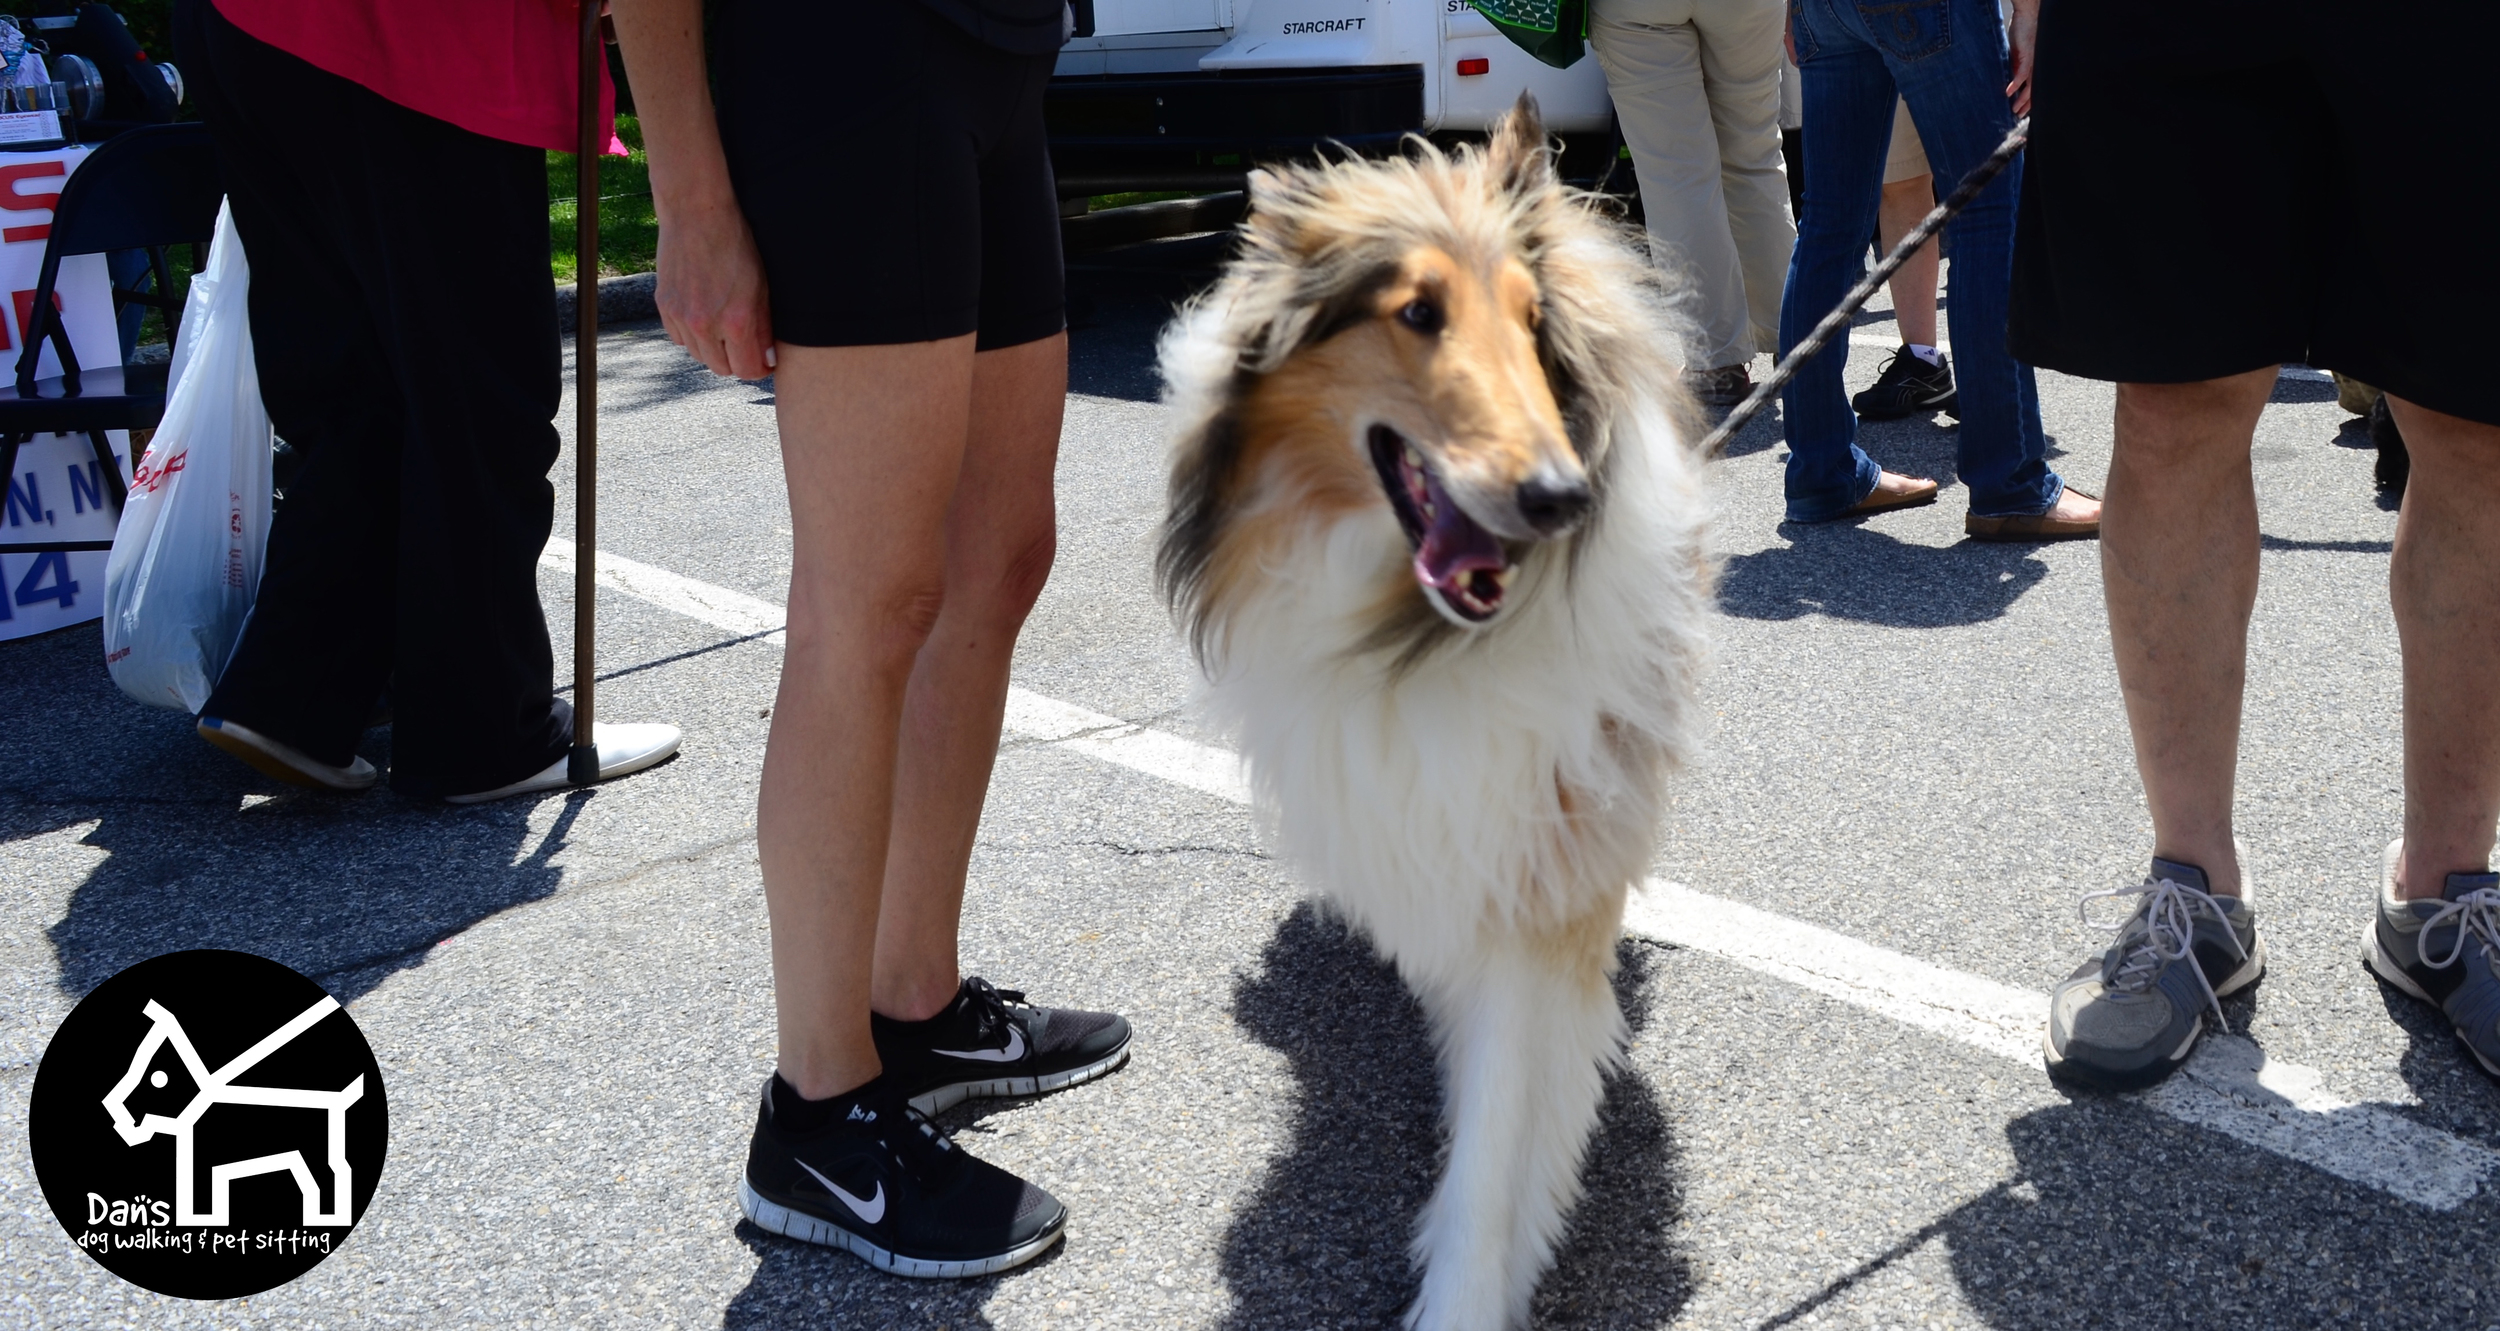 Beautiful Pup at Dan's Dog Walking and Pet Sitting Doggie Photo Booth at Harbor Fest 2015.jpg